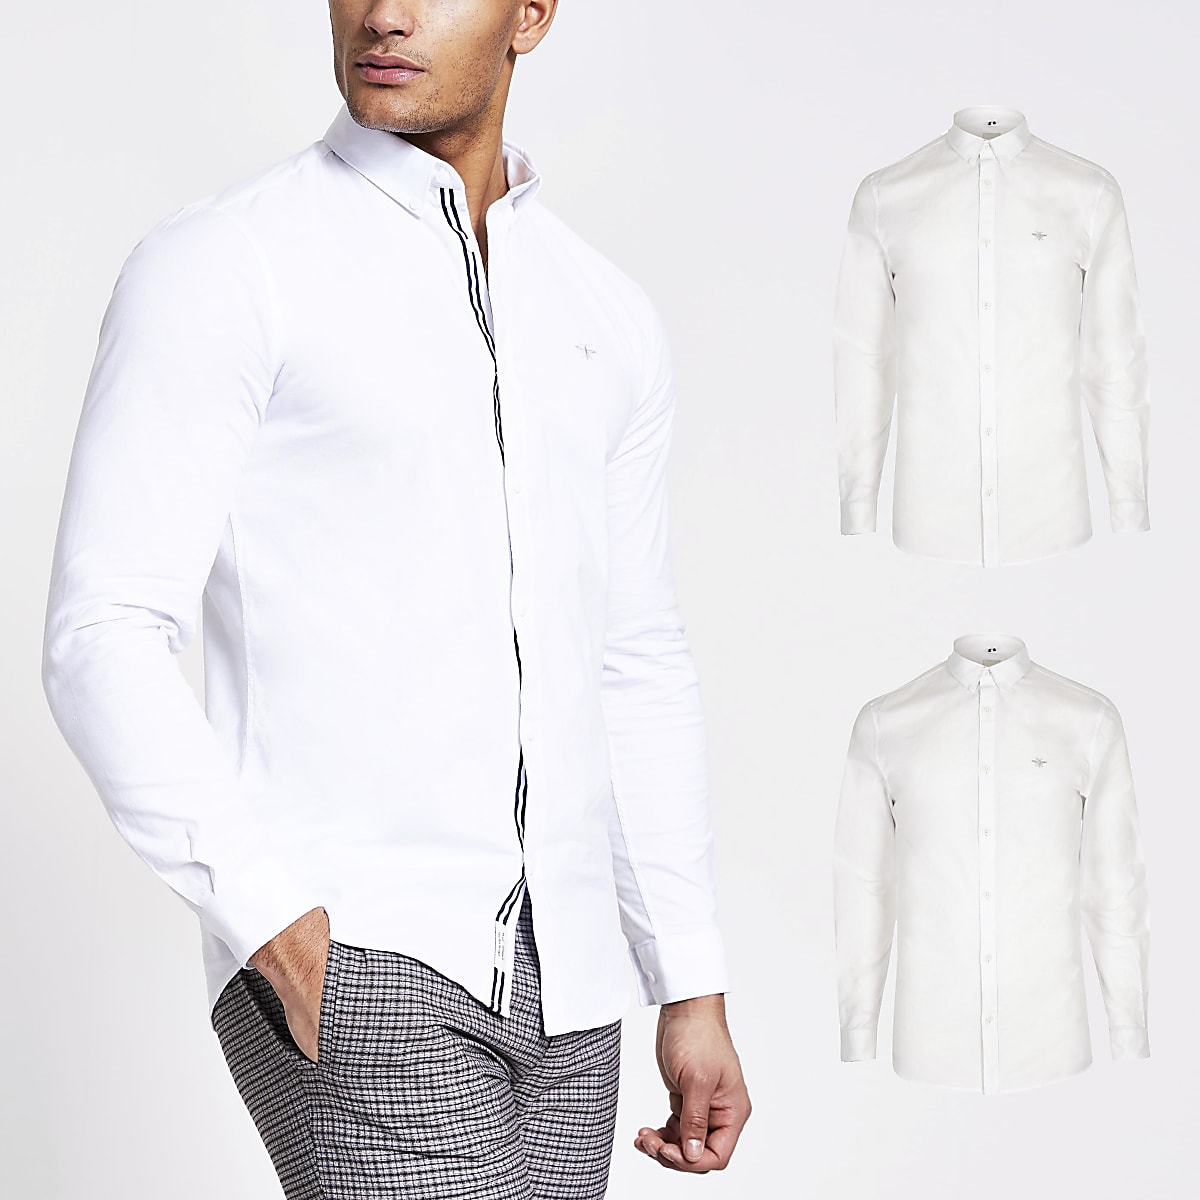 White regular fit Oxford shirt 2 pack